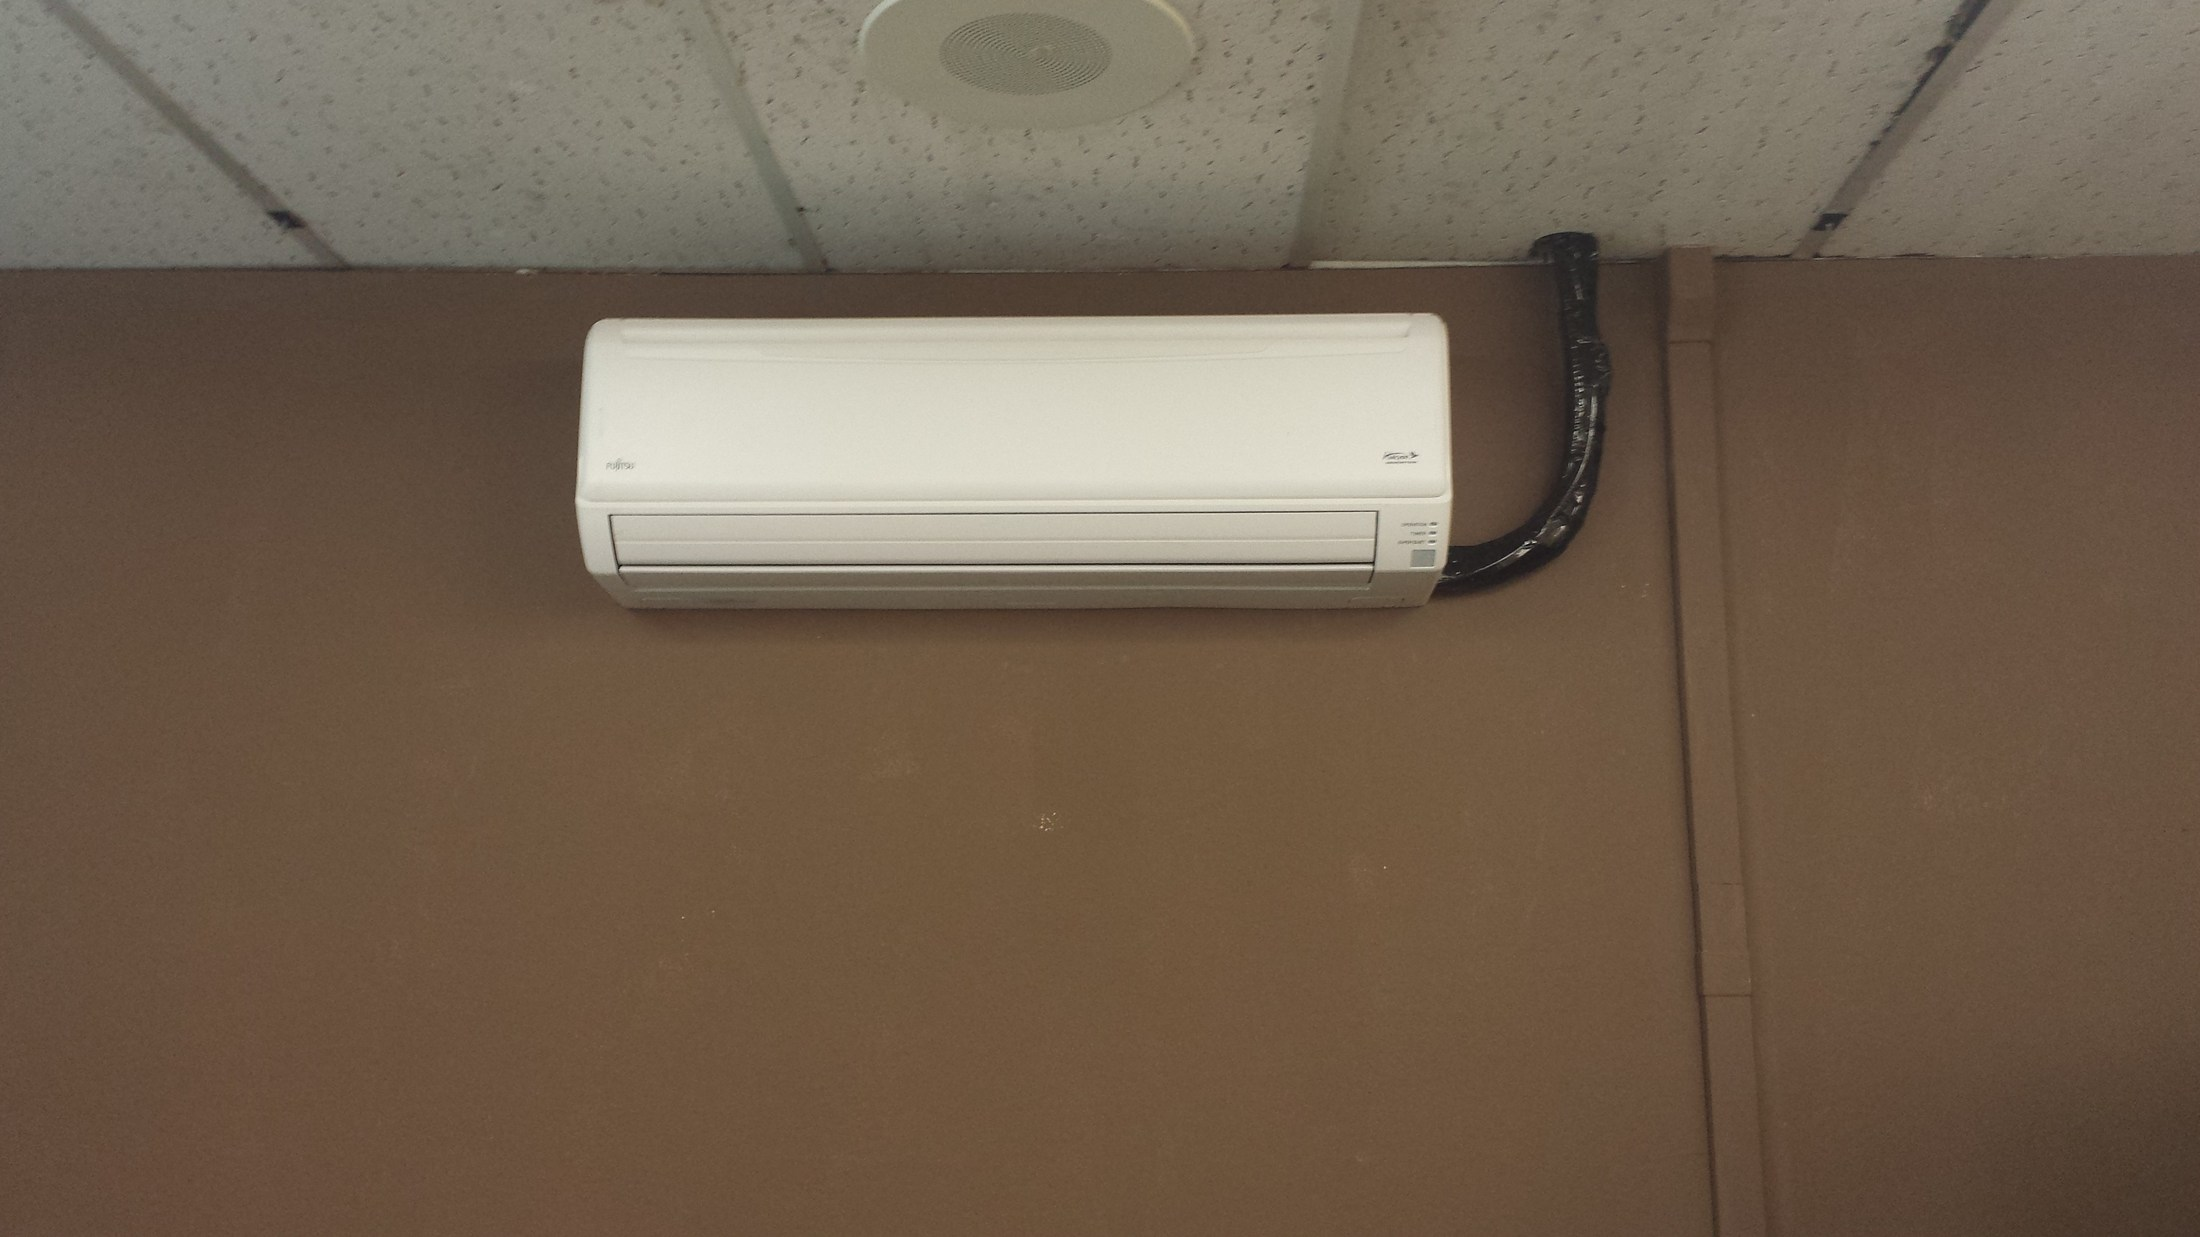 Installation of small A/C unit